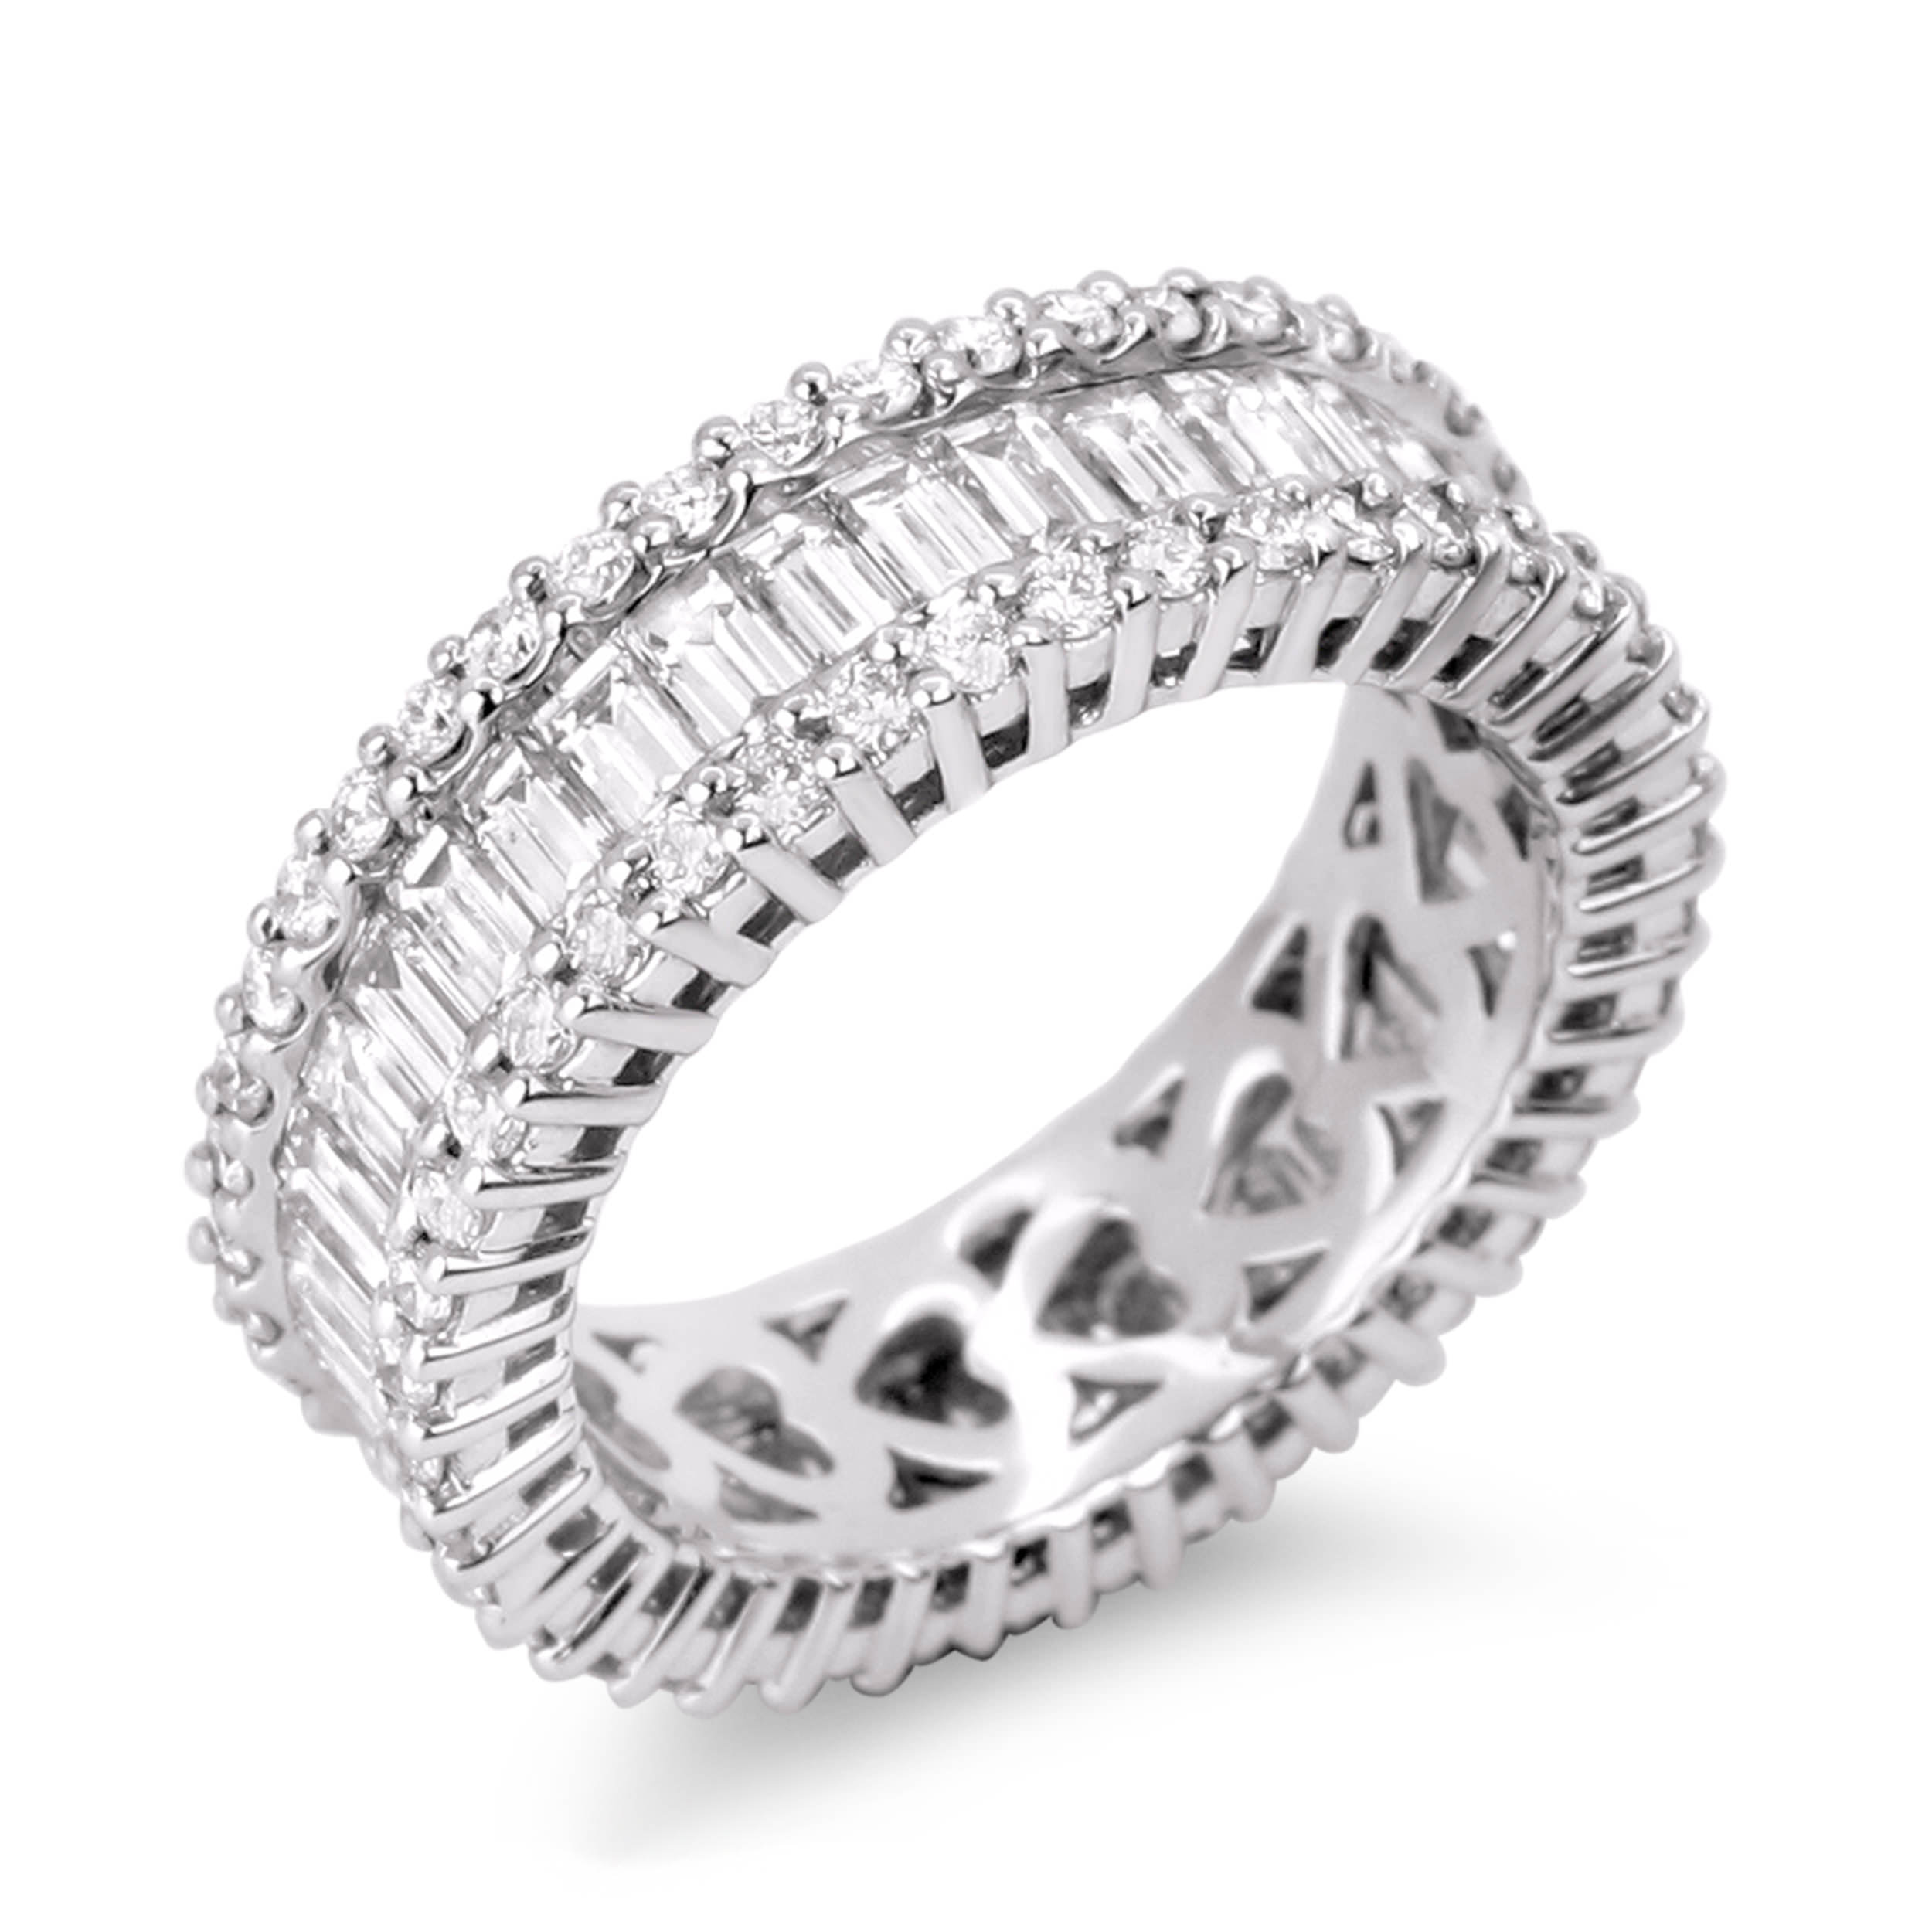 jewellery rings fine details anniversary diamond collection product anaya gent